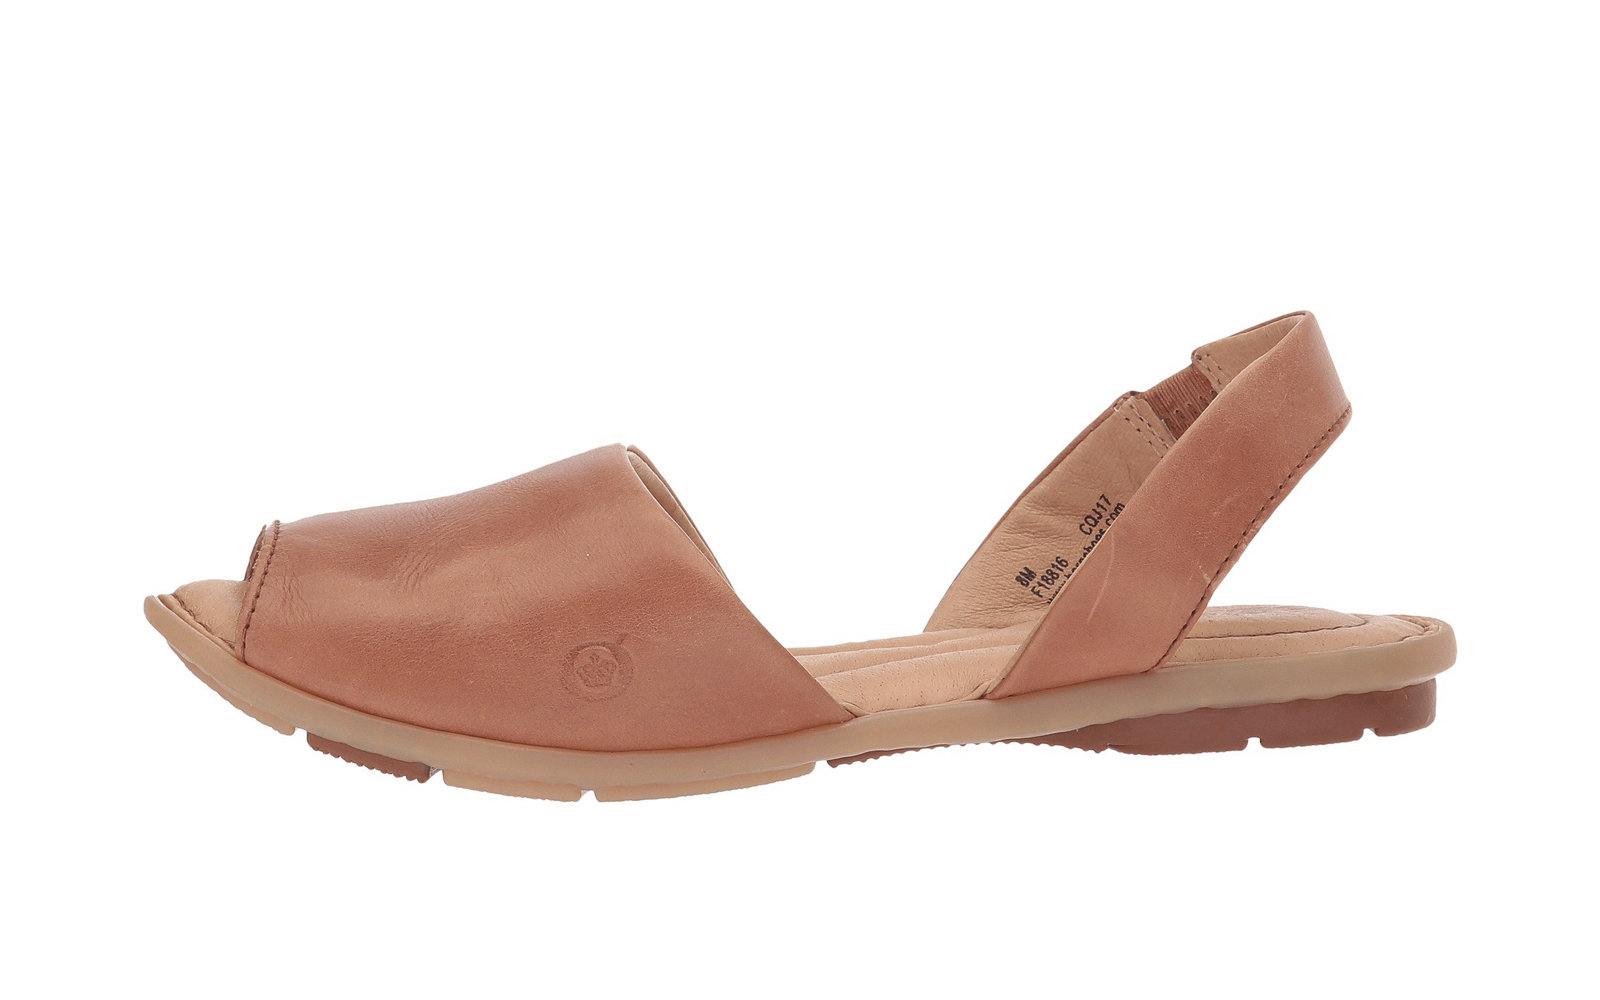 b46b5ad0033b Born  Trang  Sandal. Zappos Comfy Travel-friendly Summer Sandals